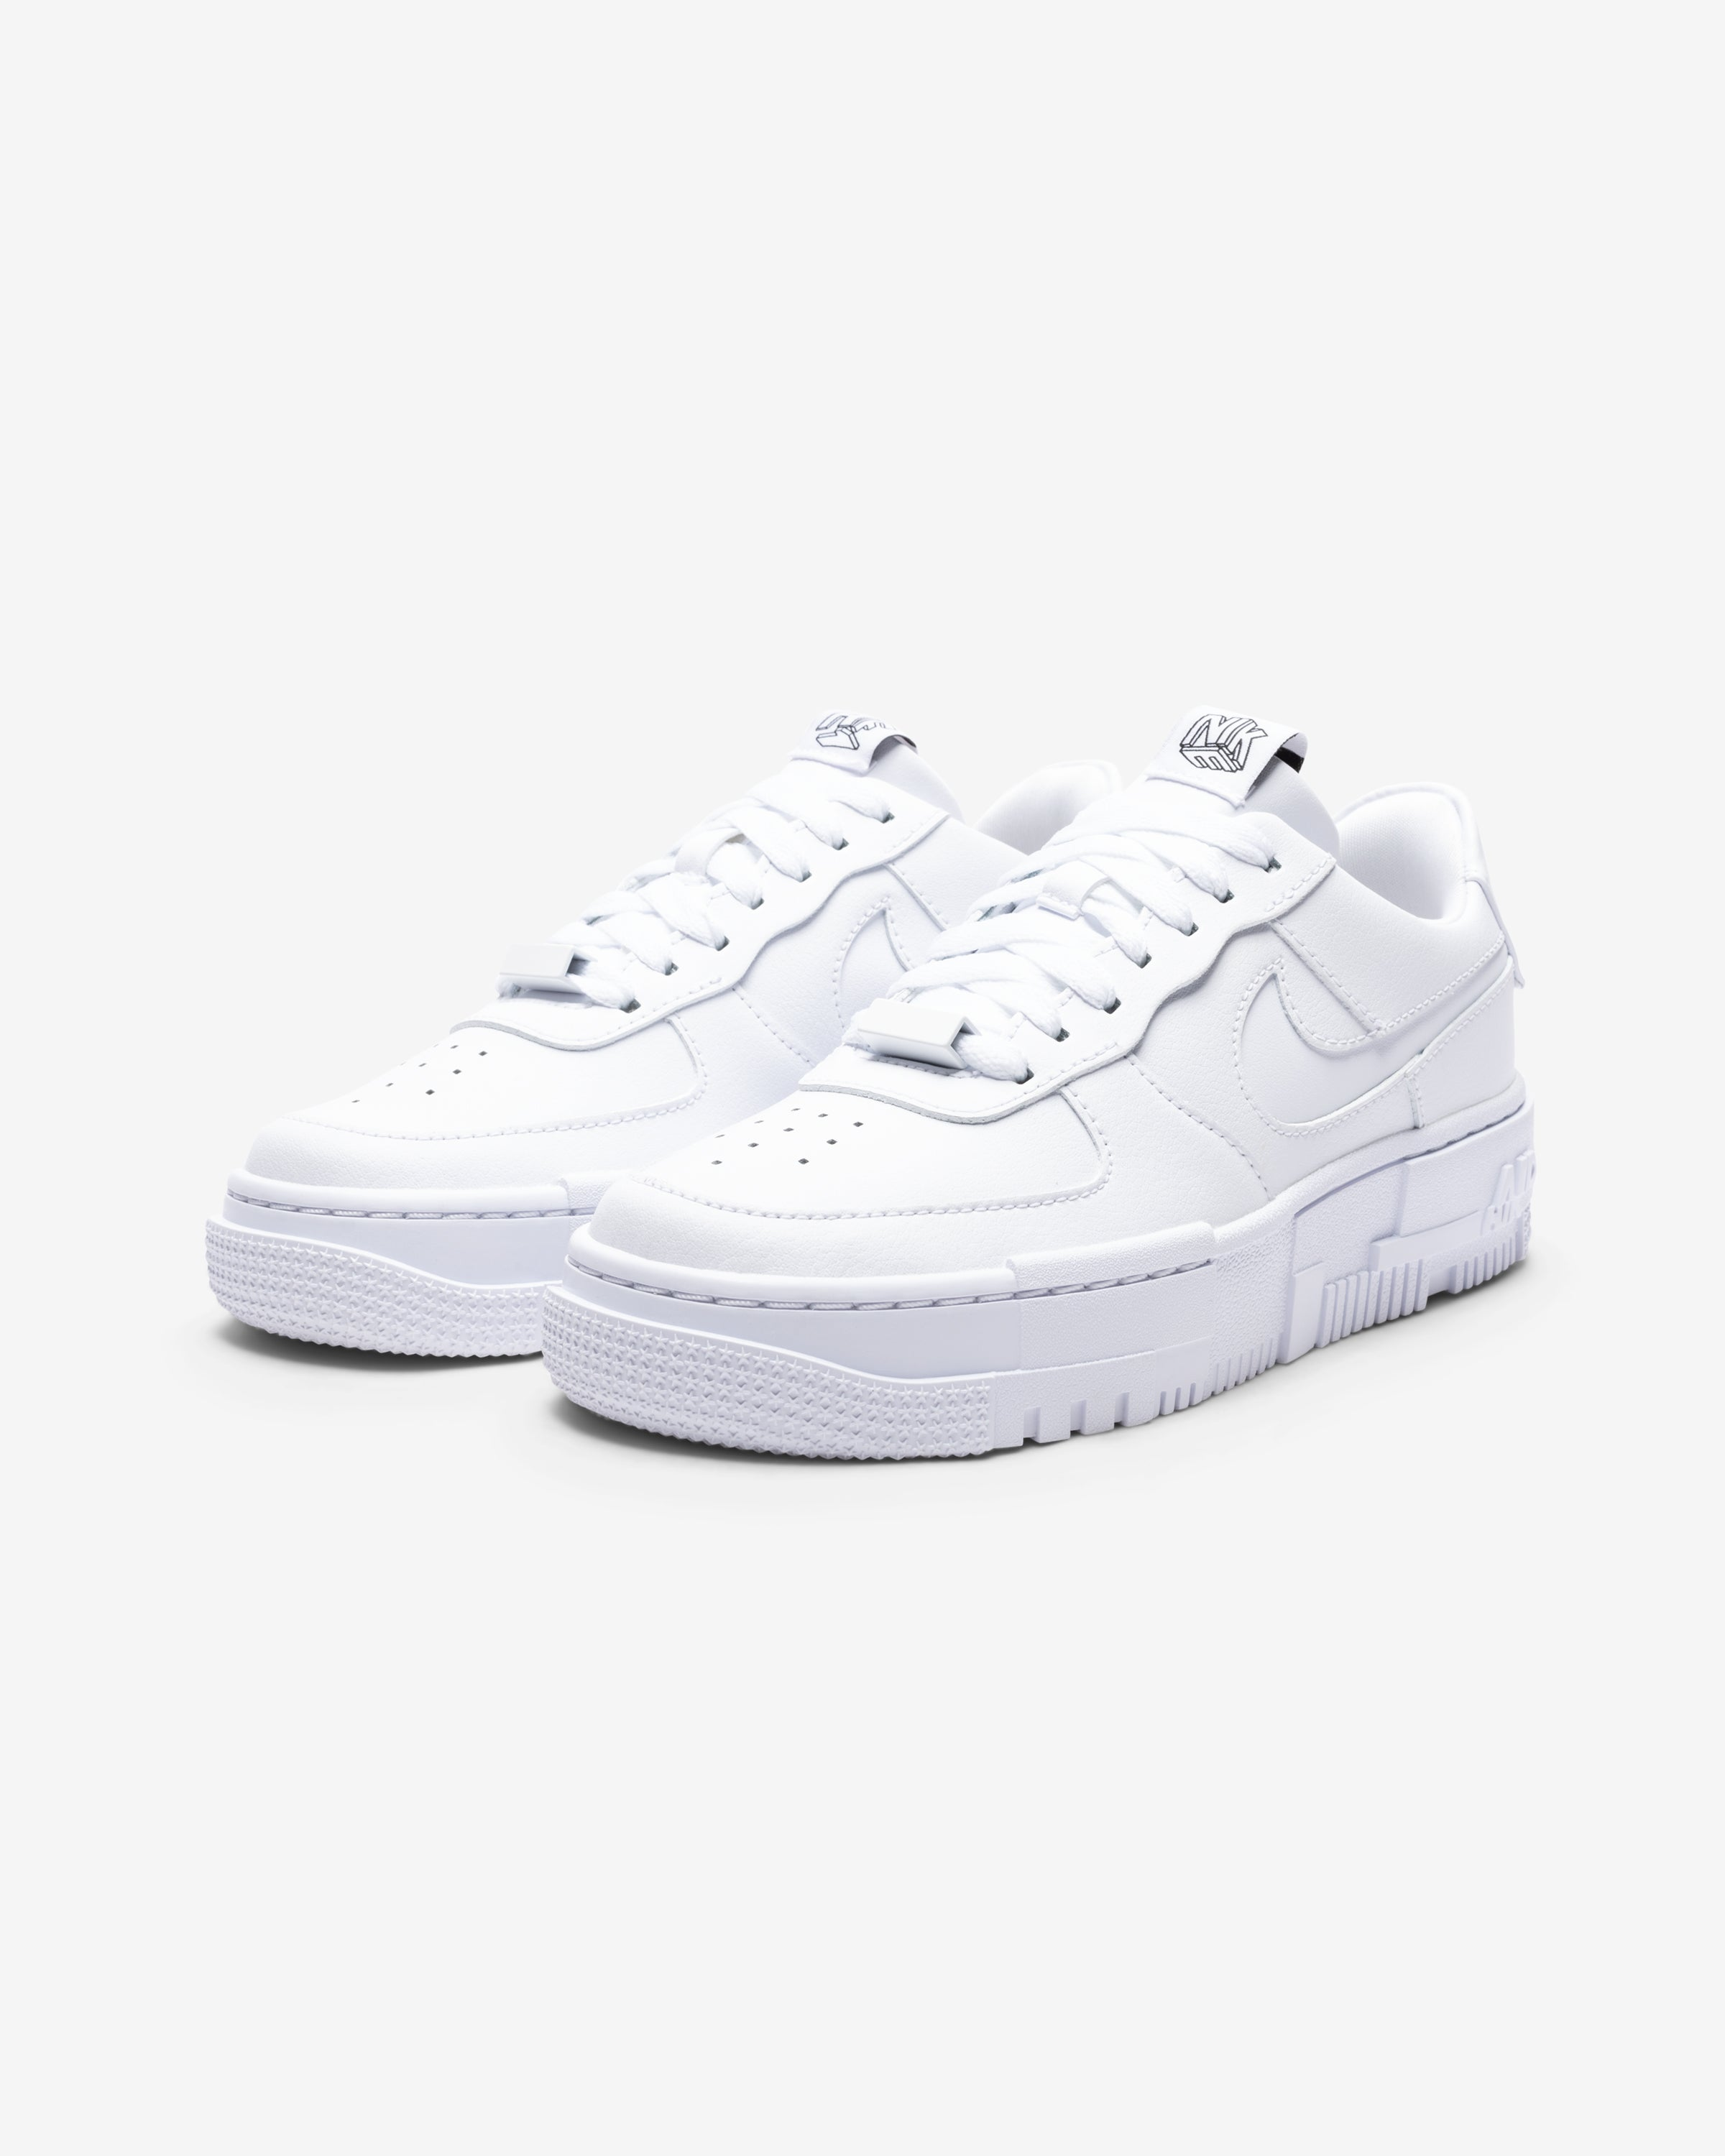 WOMEN'S AIR FORCE 1 PIXEL - WHITE/ BLACK/ SAIL